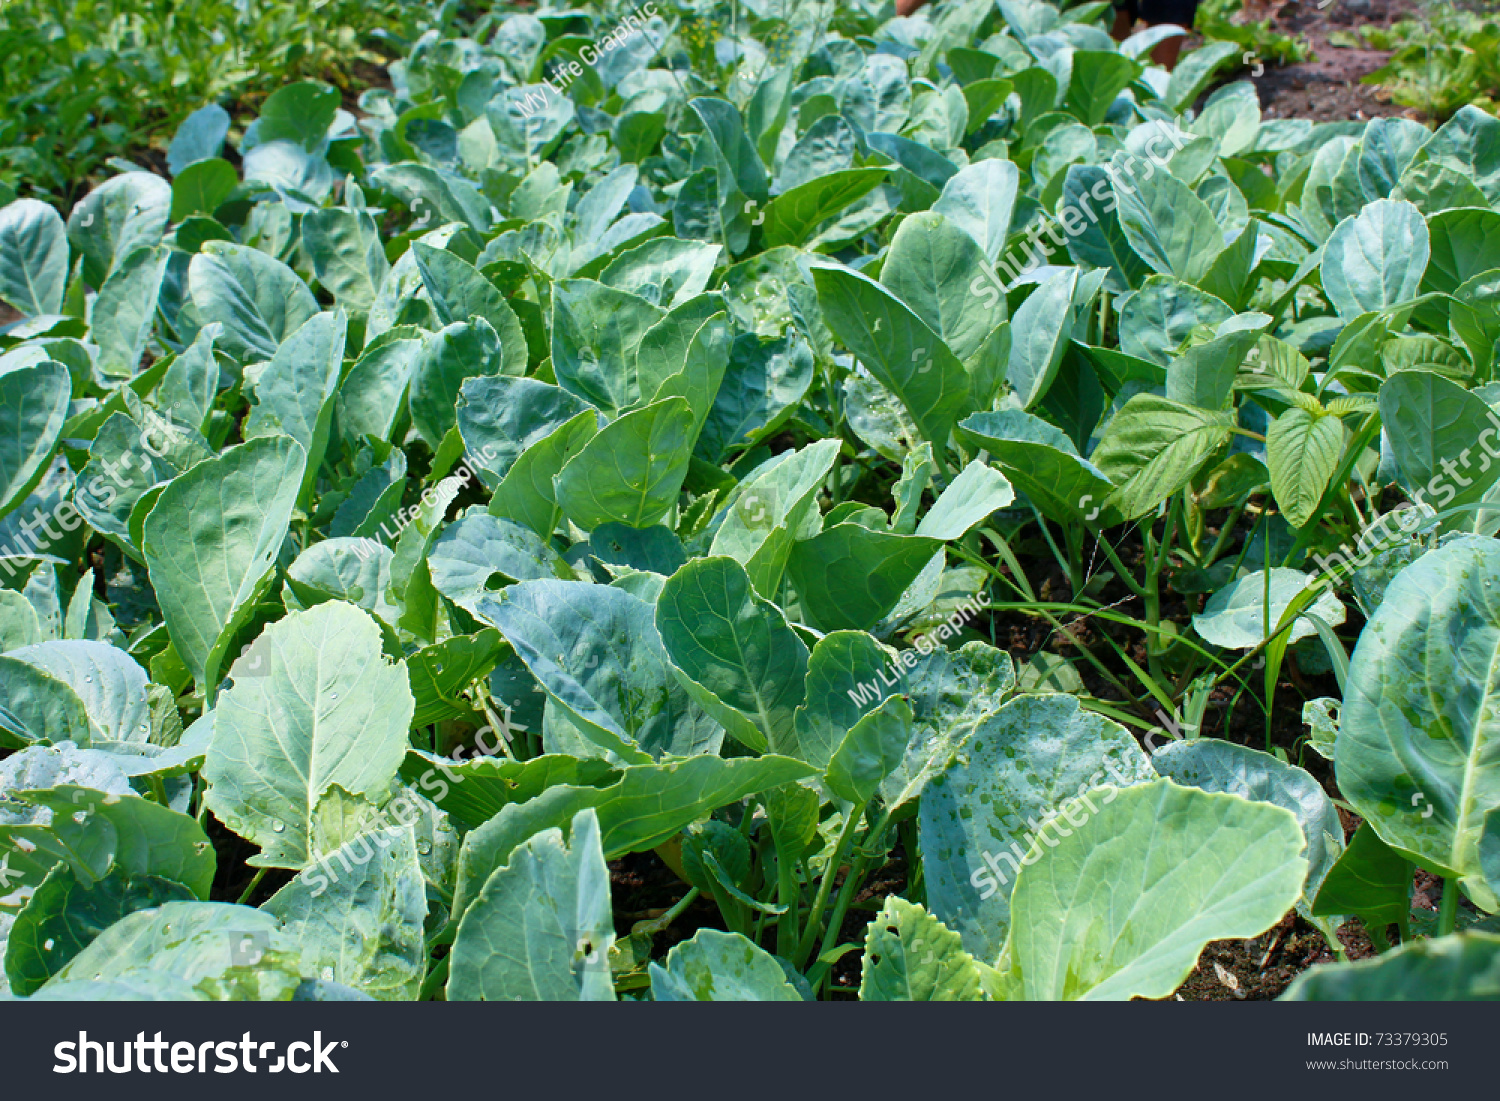 how to cook fresh kale from the garden